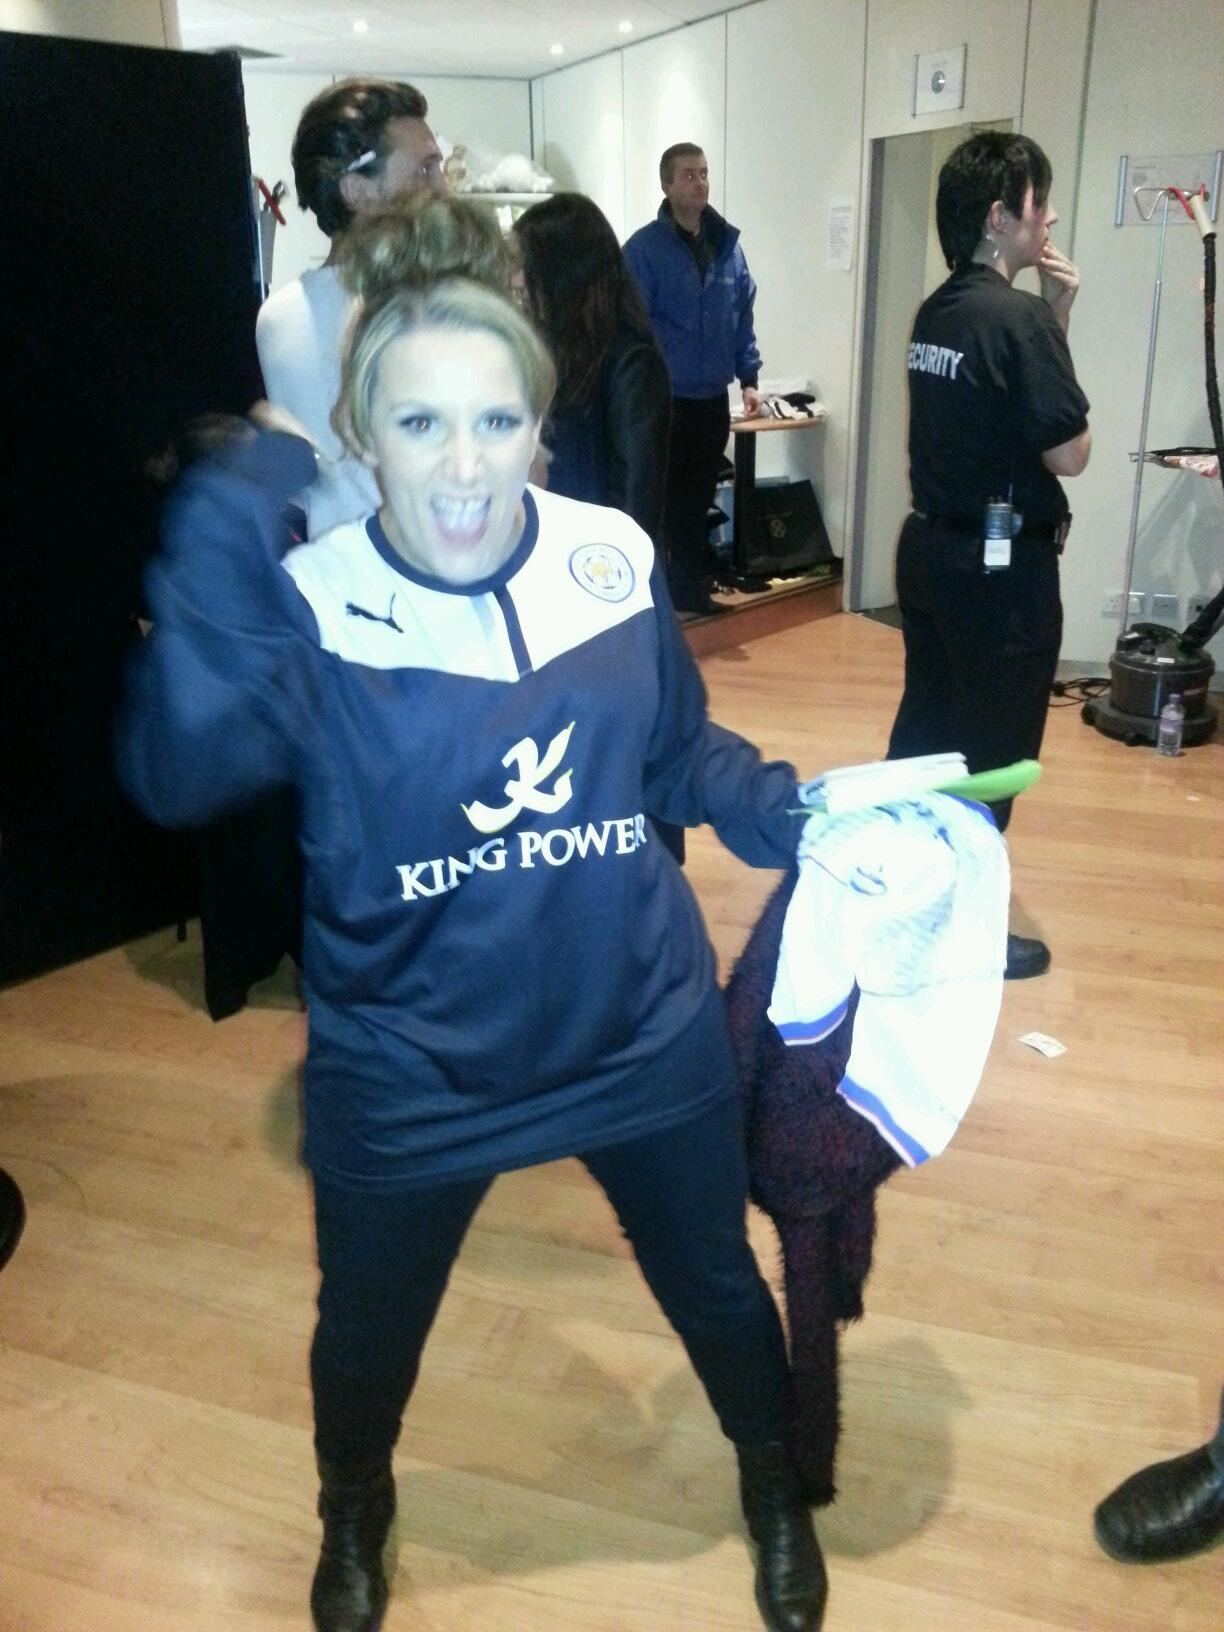 RT @laurapearson198: @SamBaileyREAL http://t.co/50gpSNE9oF